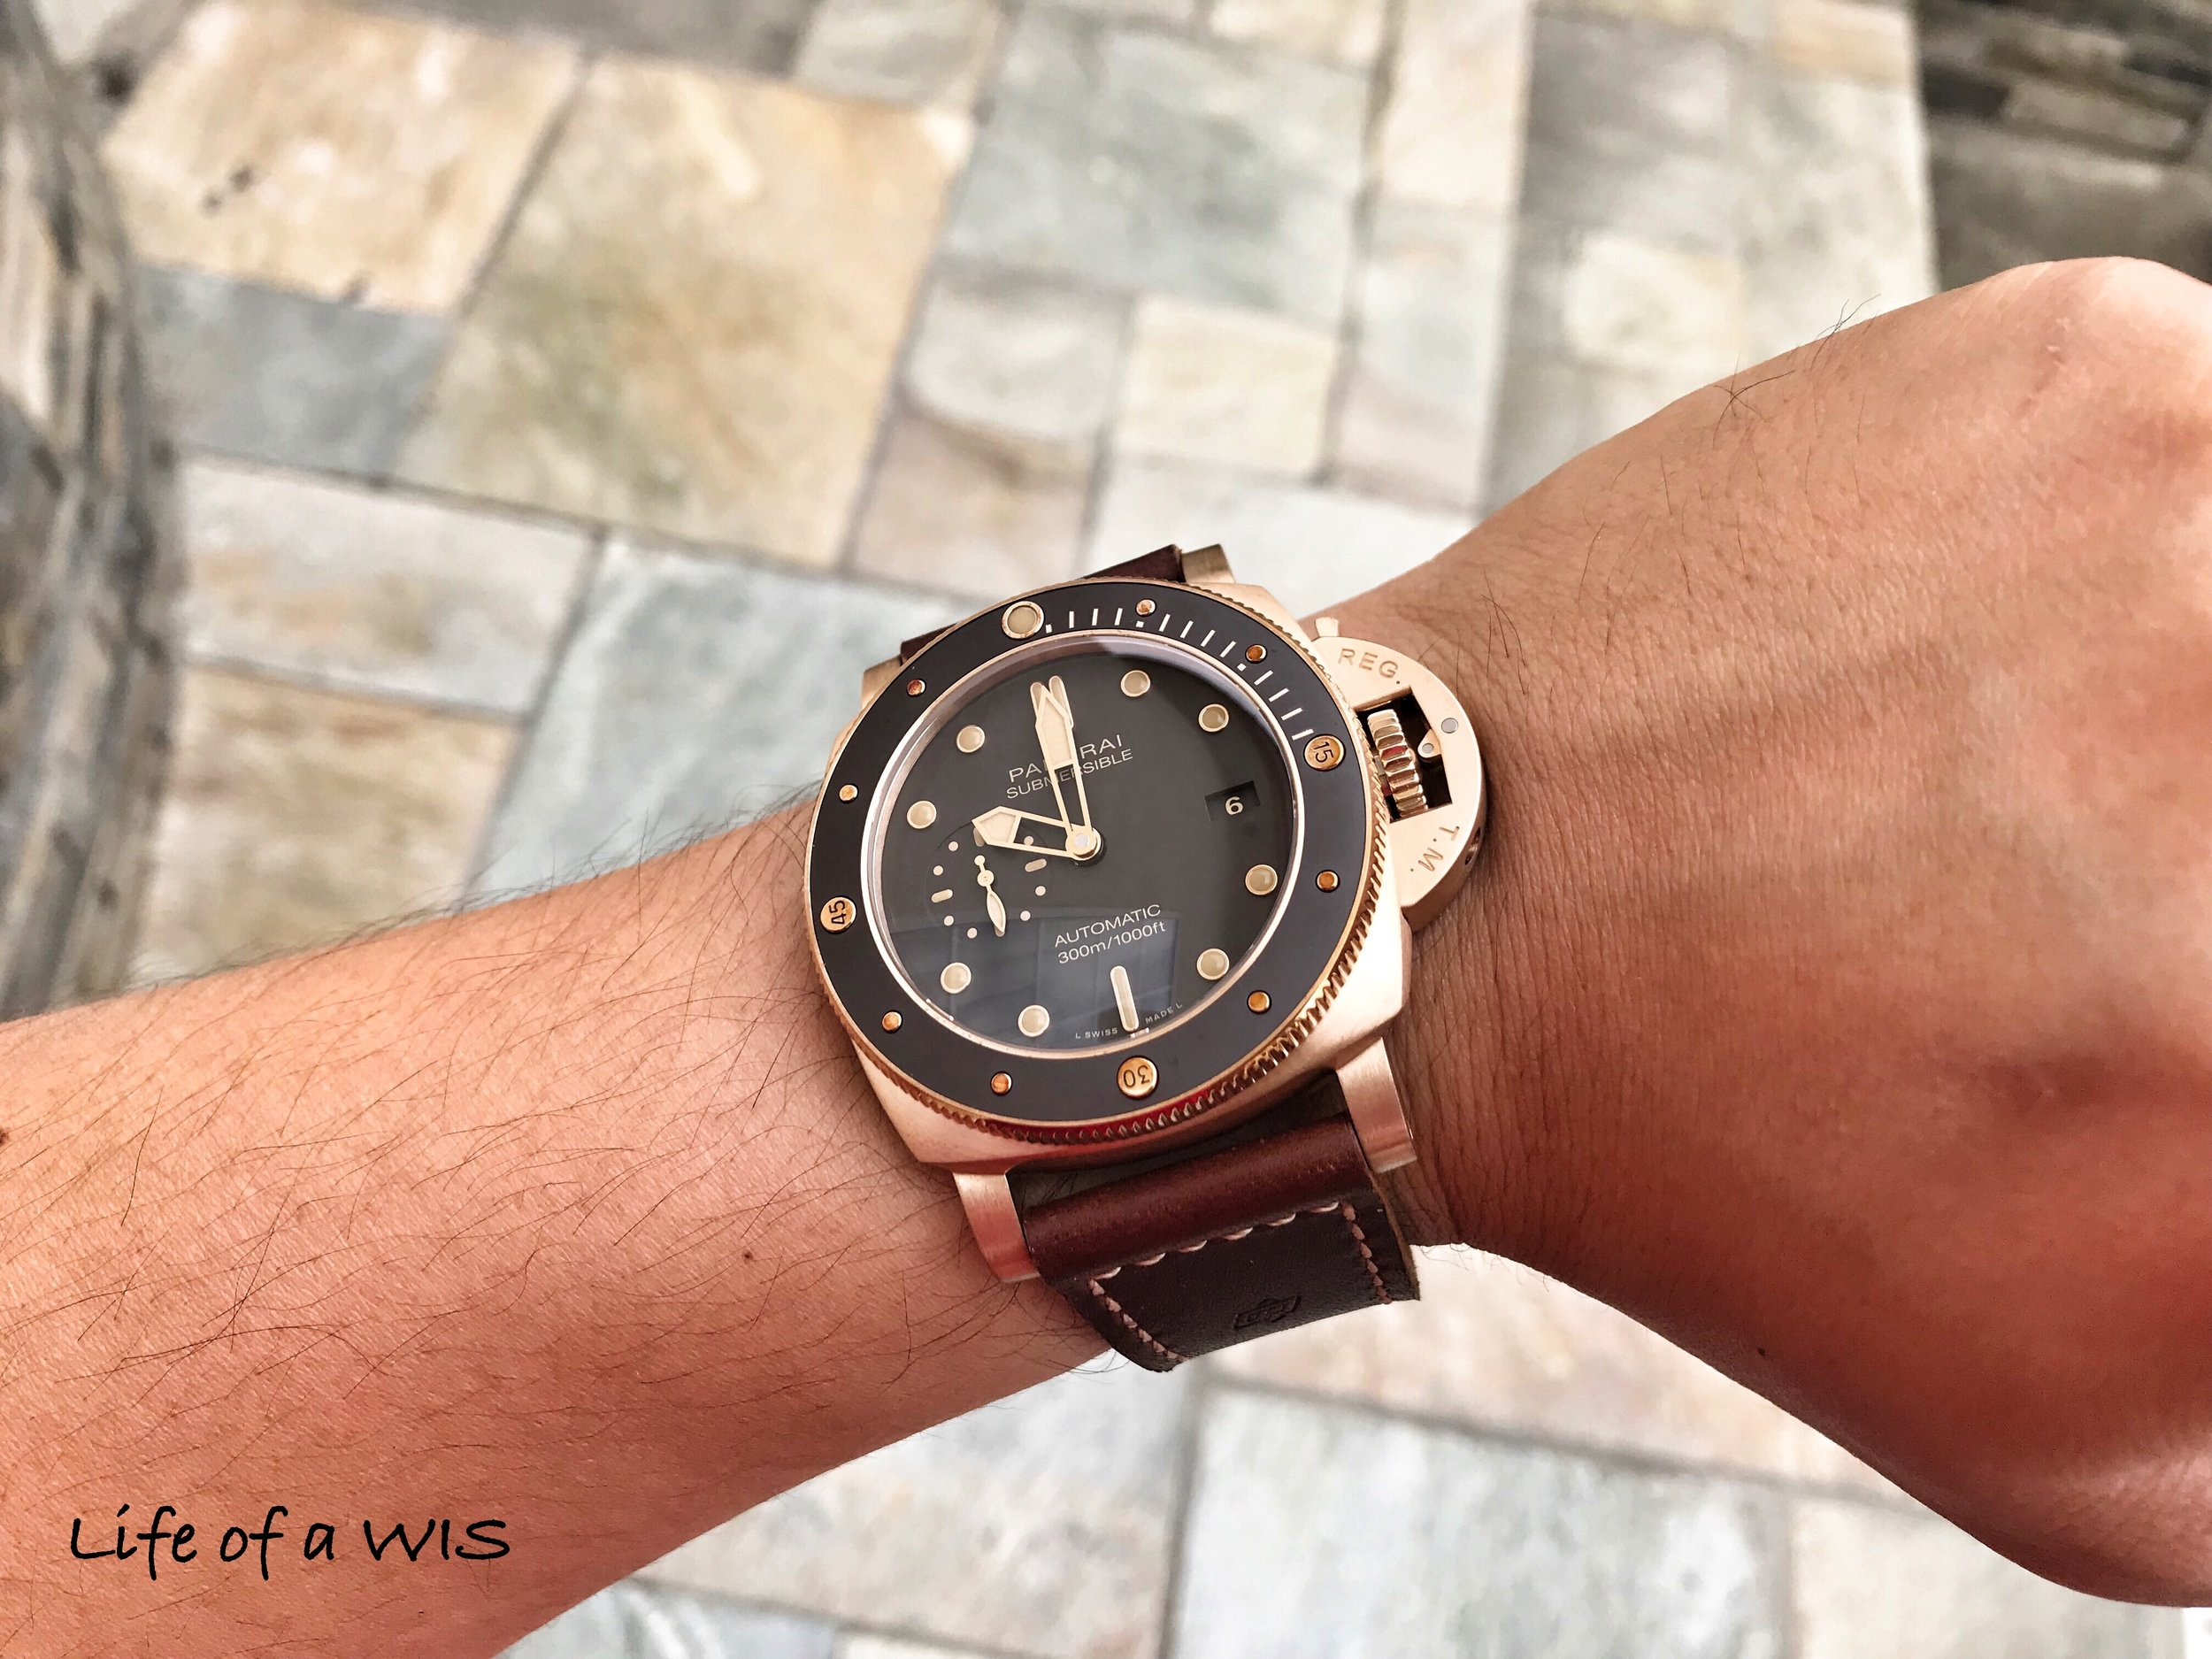 Though they appear black in photos, the dial and bezel are actually dark brown.